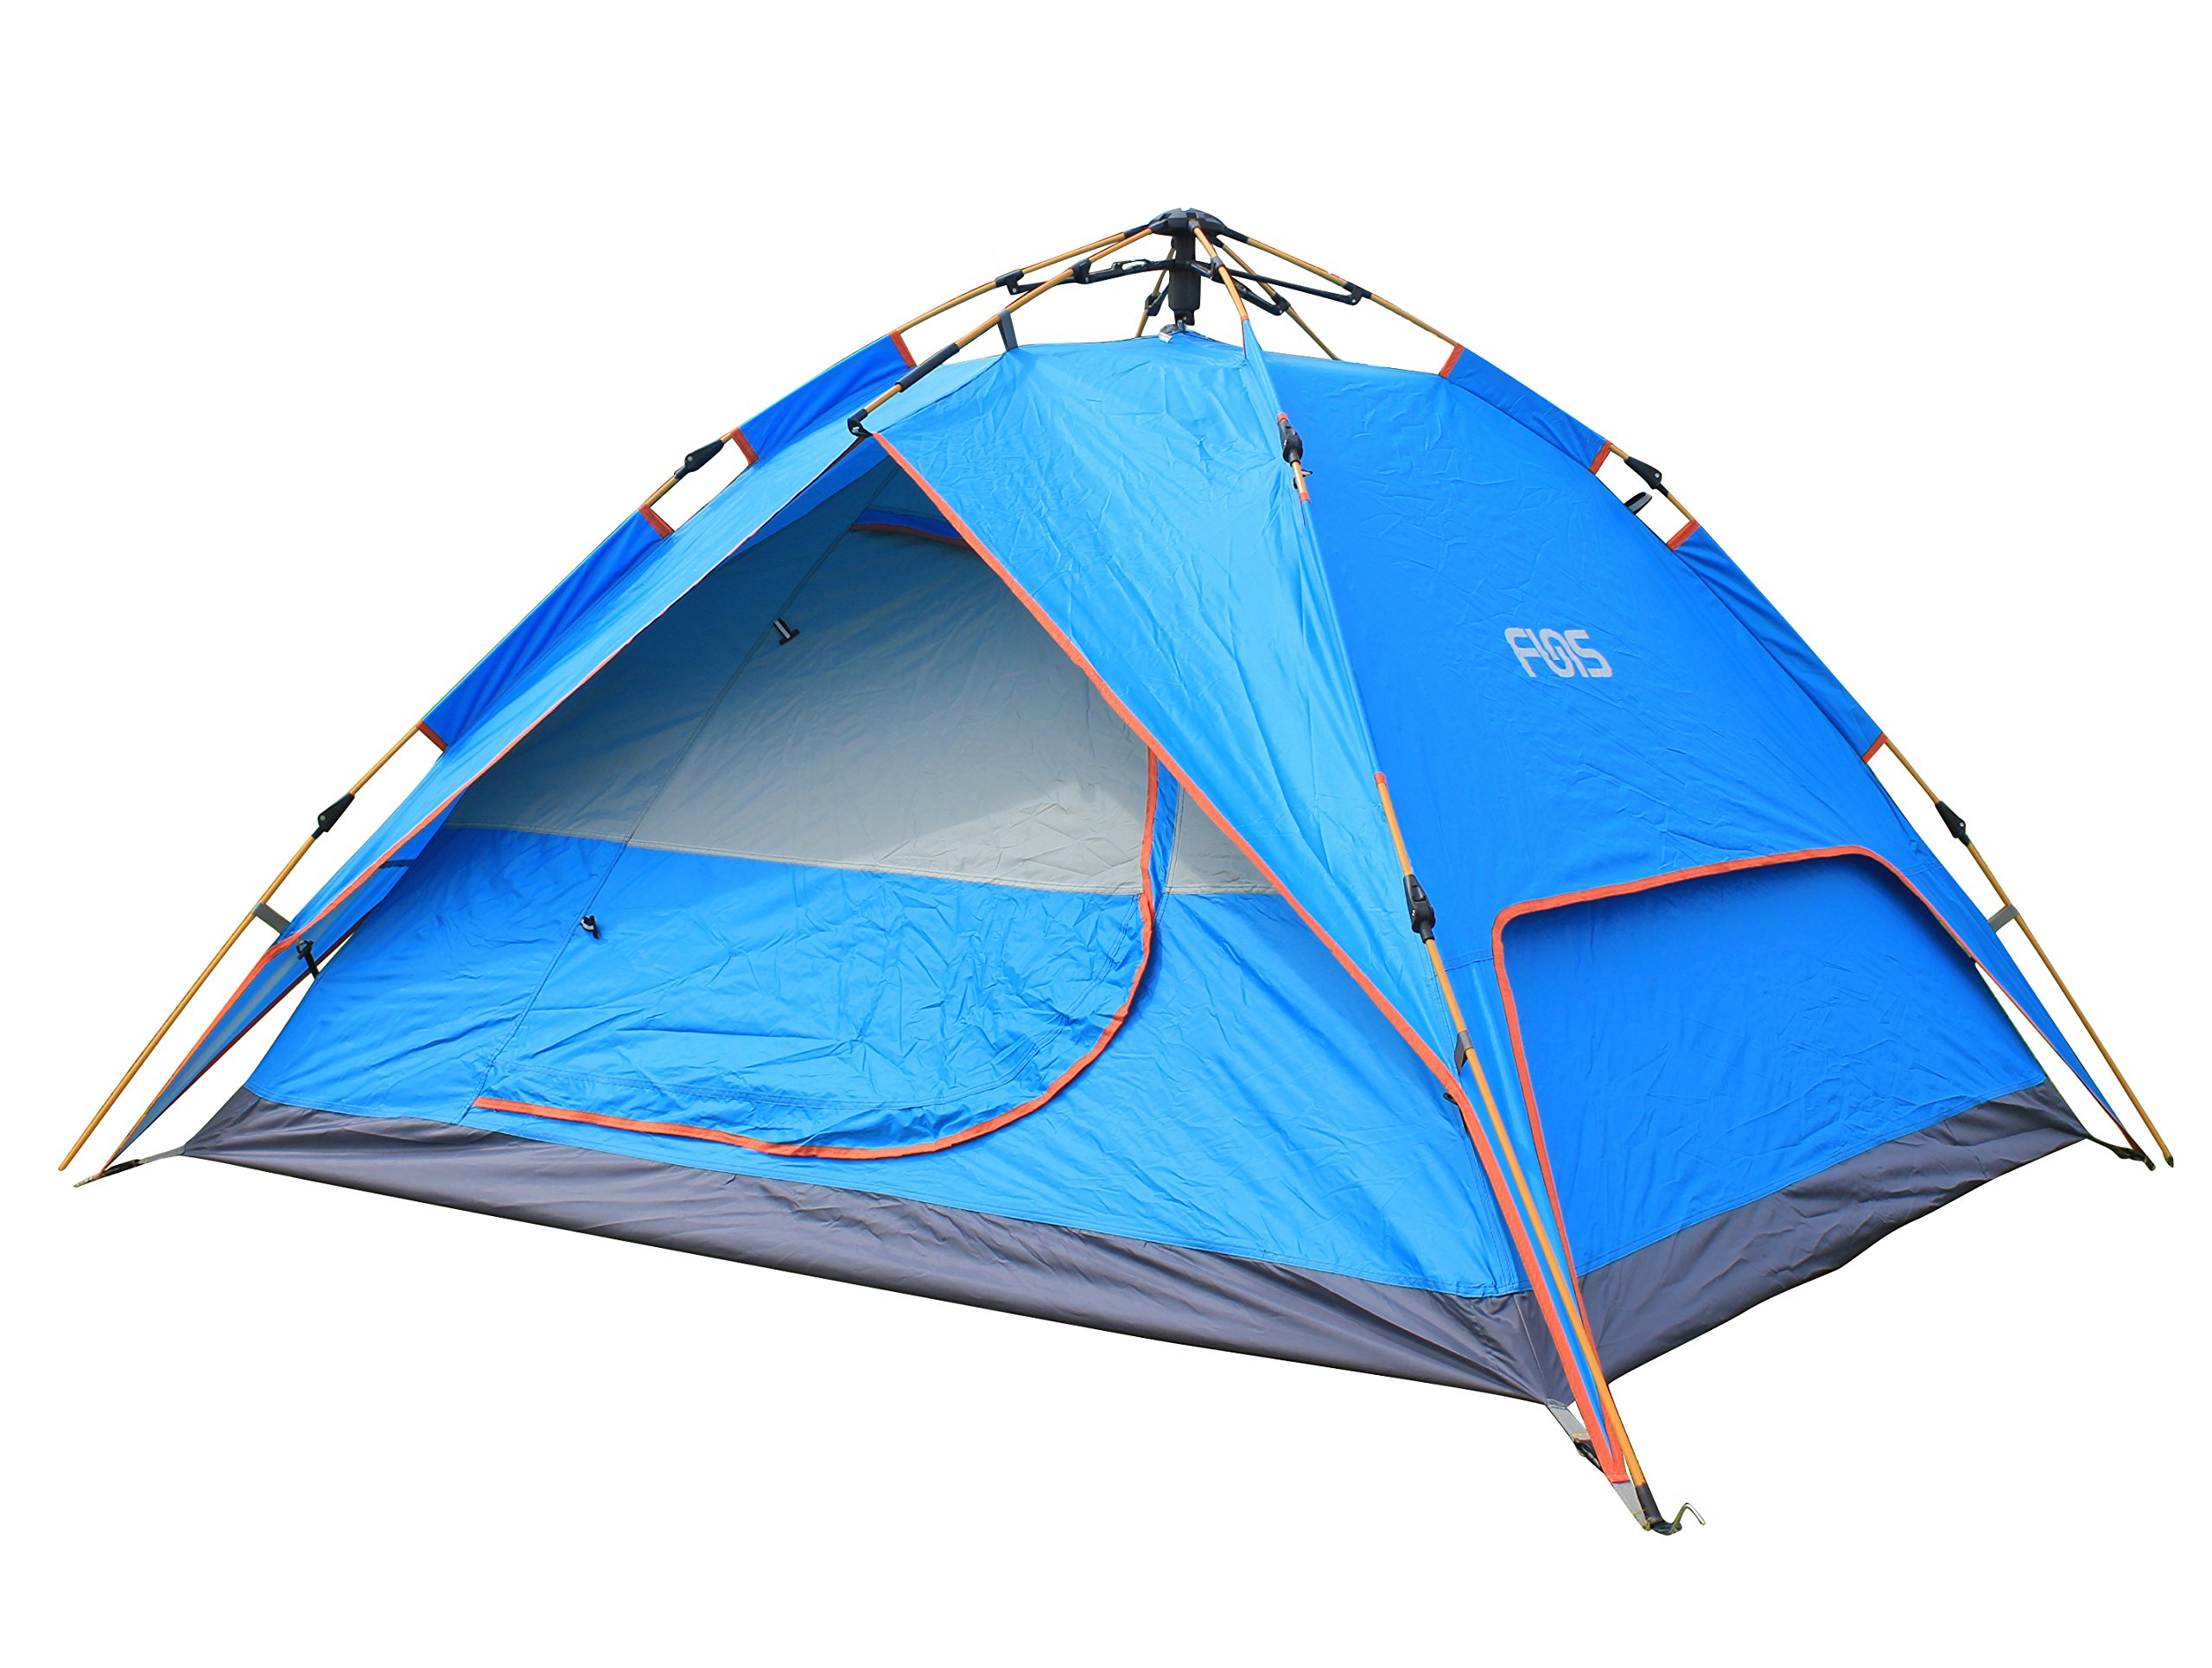 FUNS Instant 2 Person Easy Push Up Family Dome Tent for Camping, Hiking, Lightweight Backpacking, Beach, Shade Canopy, Kids Play, Boys & Girls